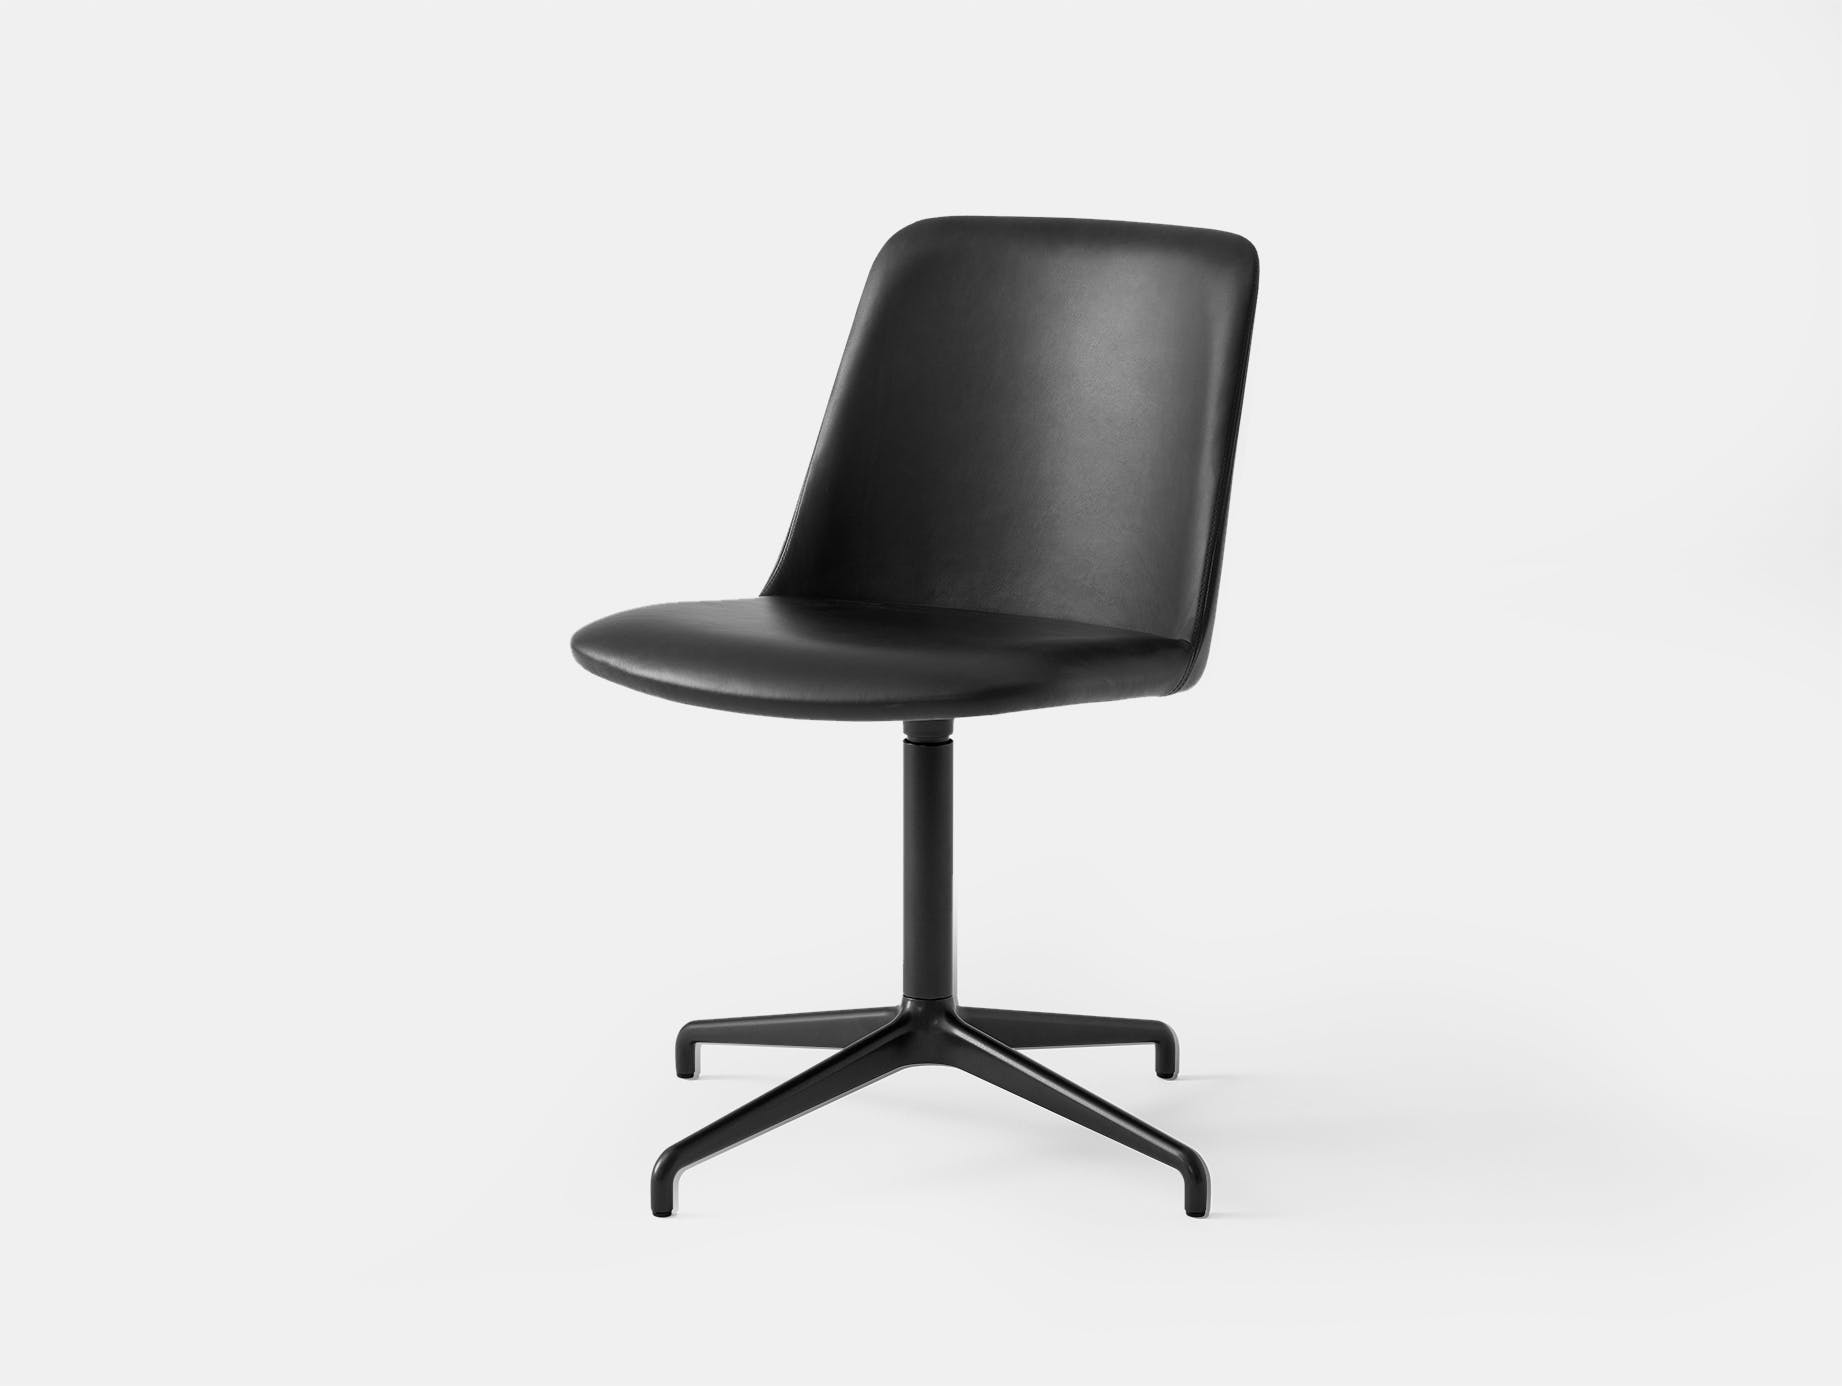 Andtradition rely chair HW18 blk leath blk